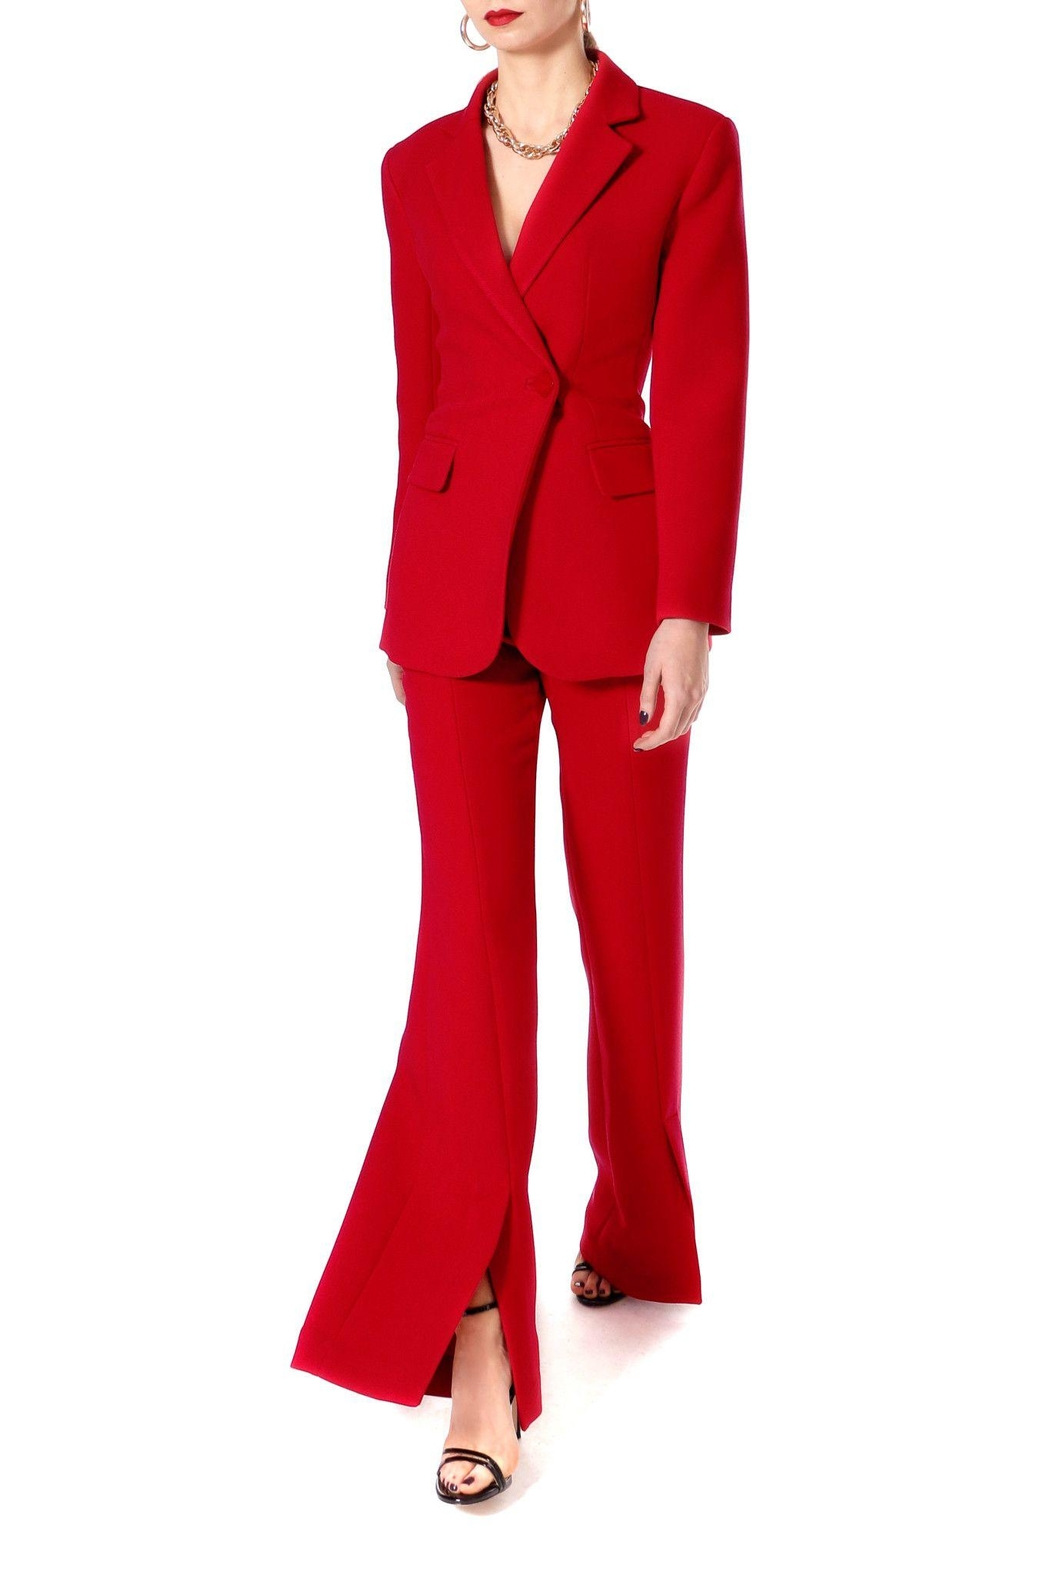 AGGI Pants Monica Lipstick Red - Height 175 - Side Cropped Image